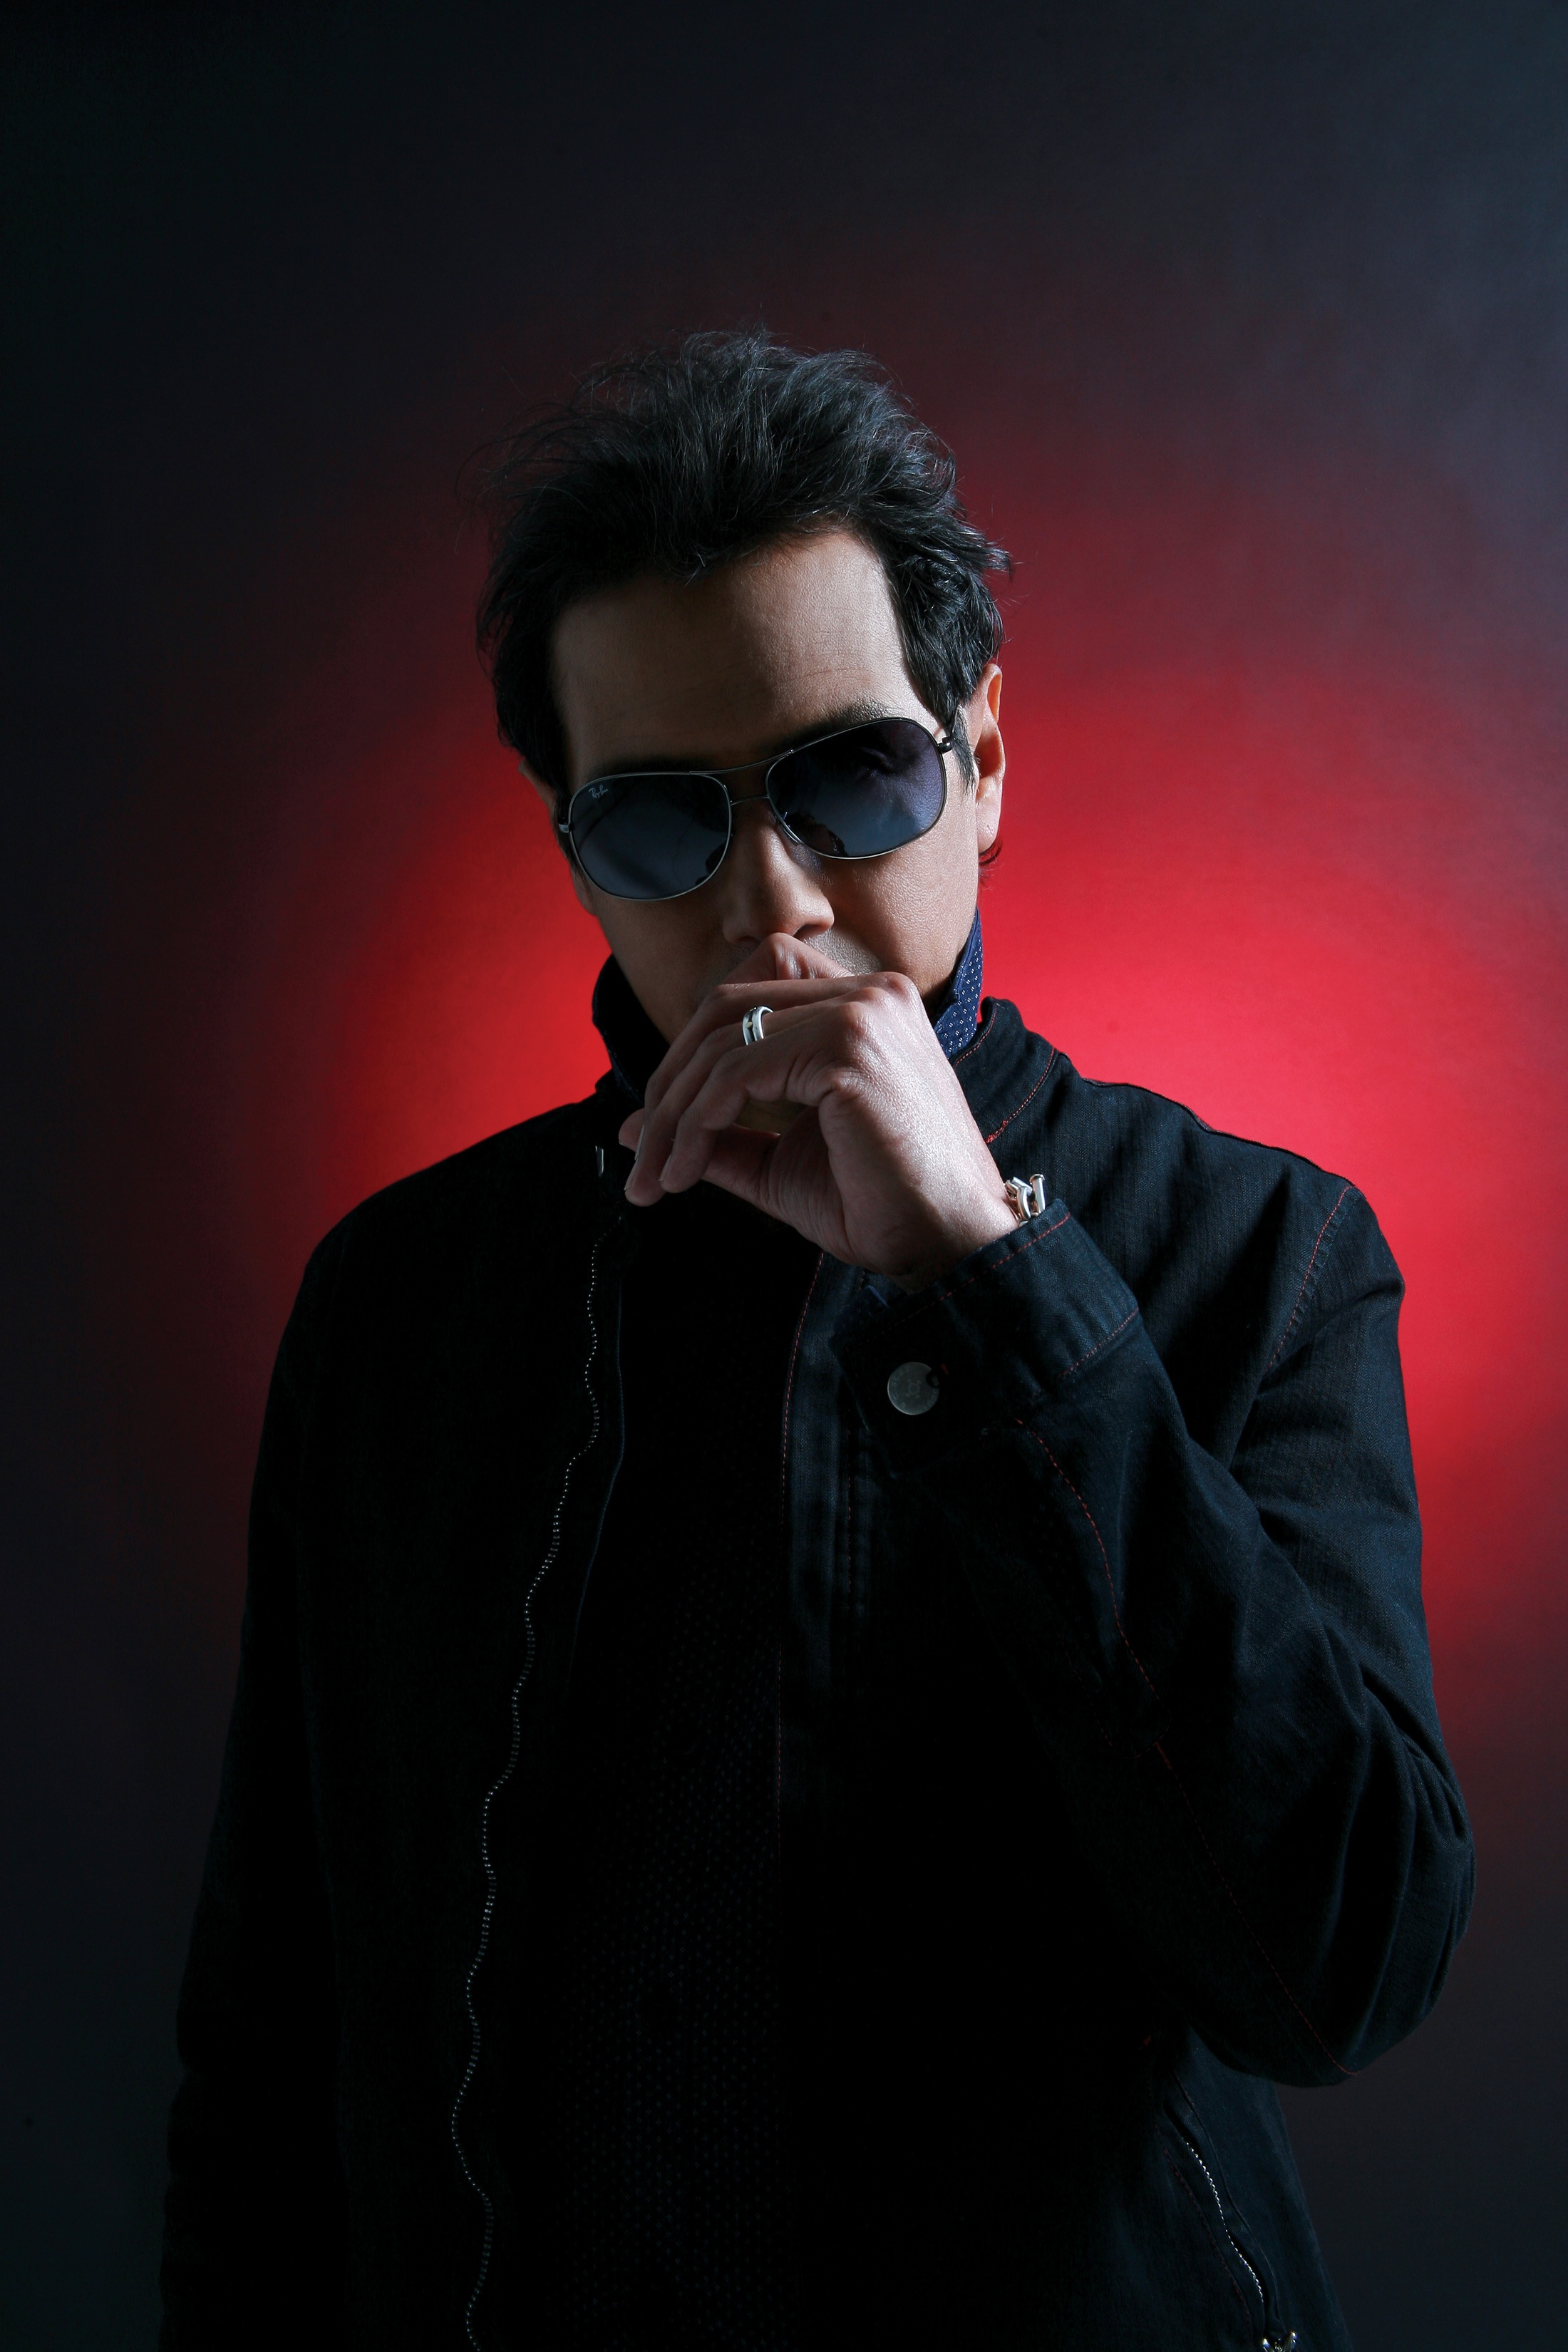 Exclusive! Alejandro Escovedo Speaks